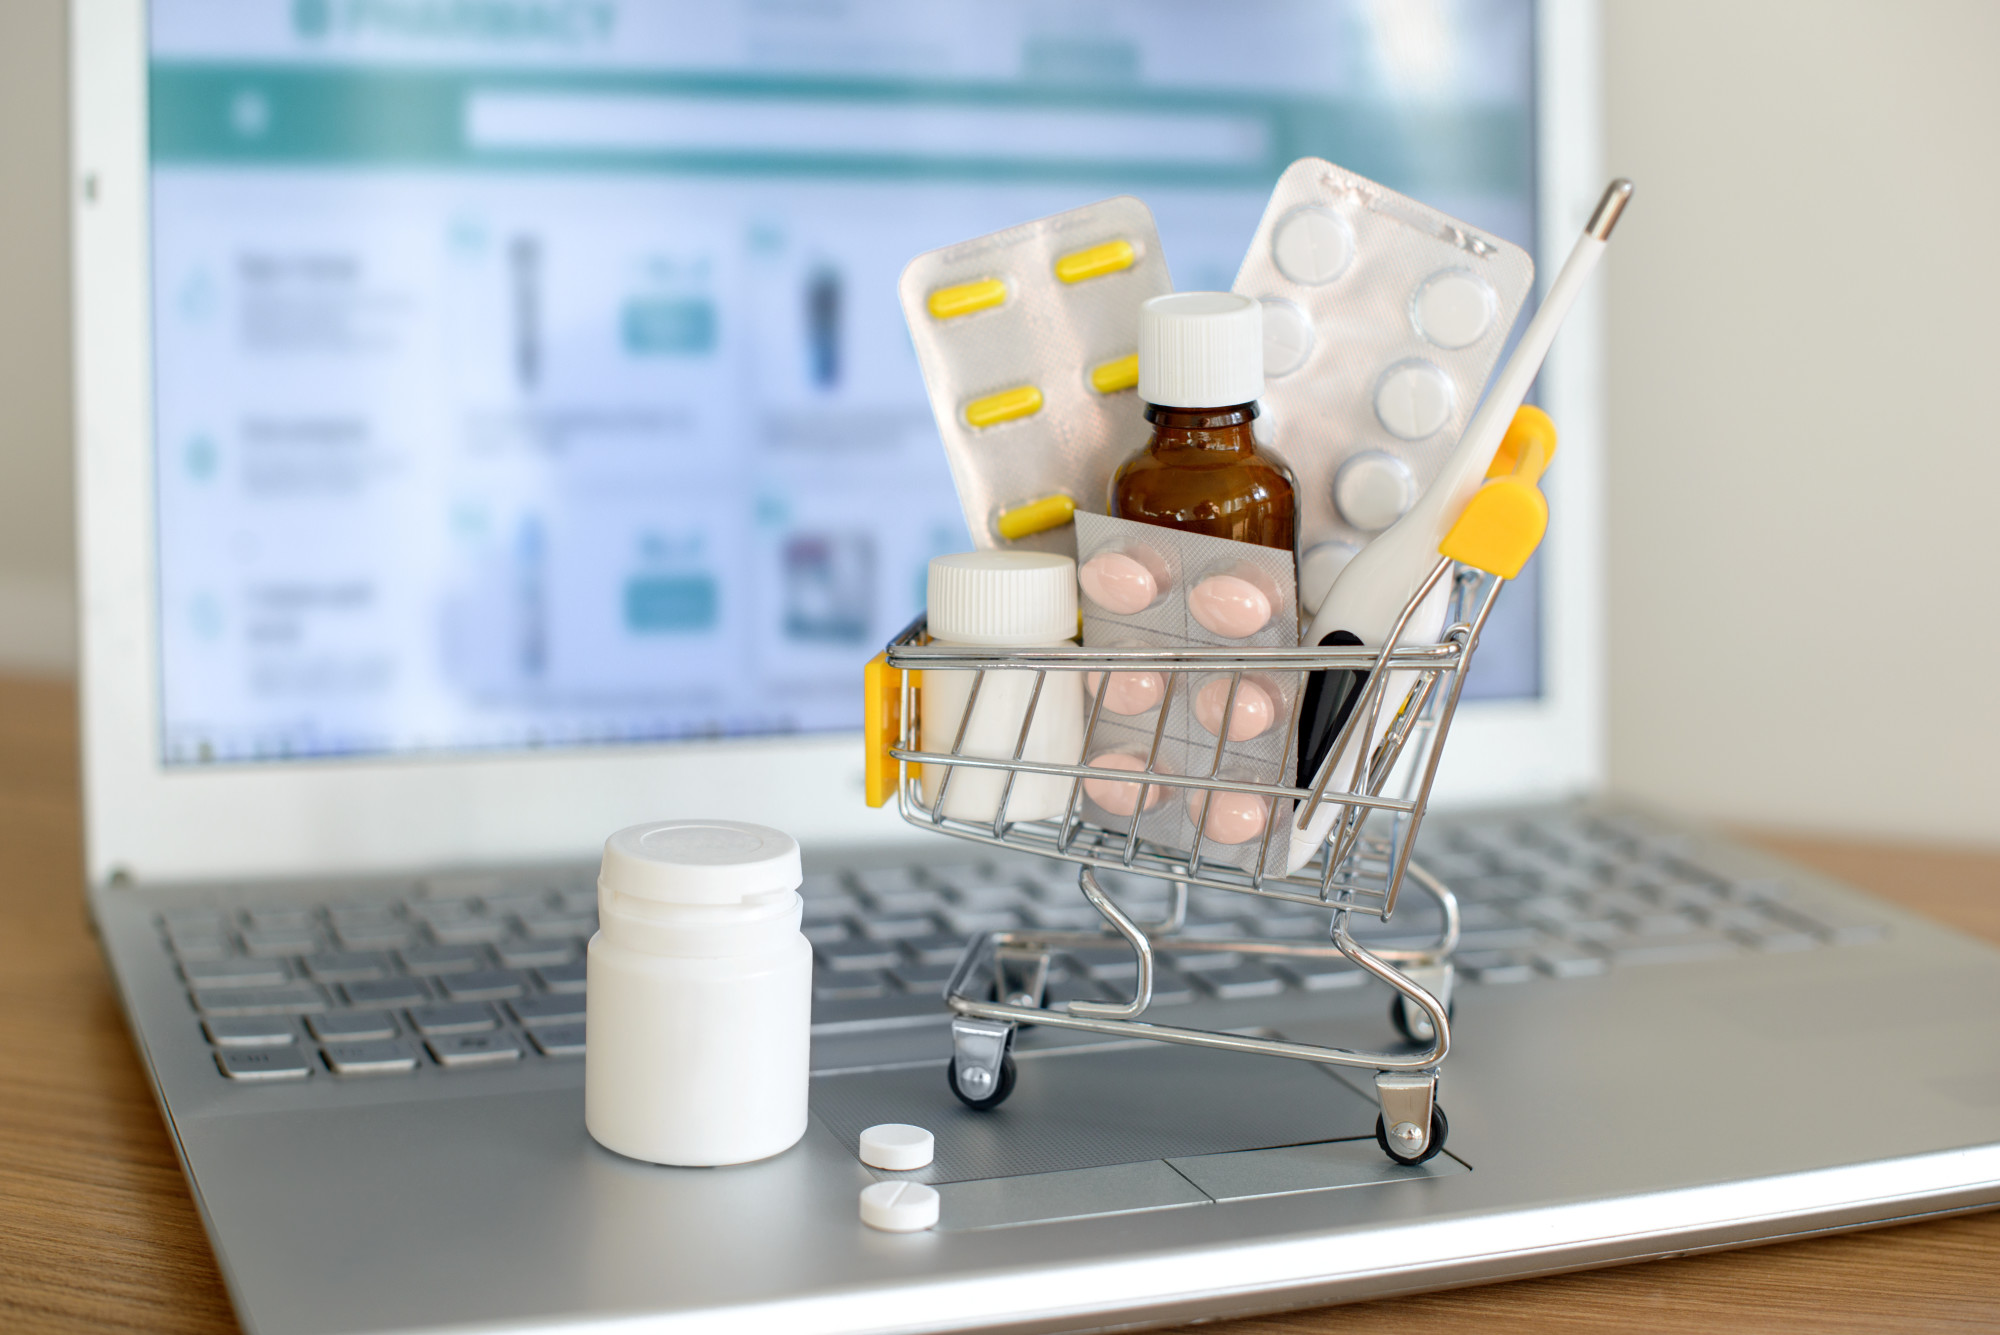 Shopping cart toy with medicines in front of laptop screen with pharmacy web site on it. Pills, blister packs, medical bottles, thermometer set. Health care and buying medications online.